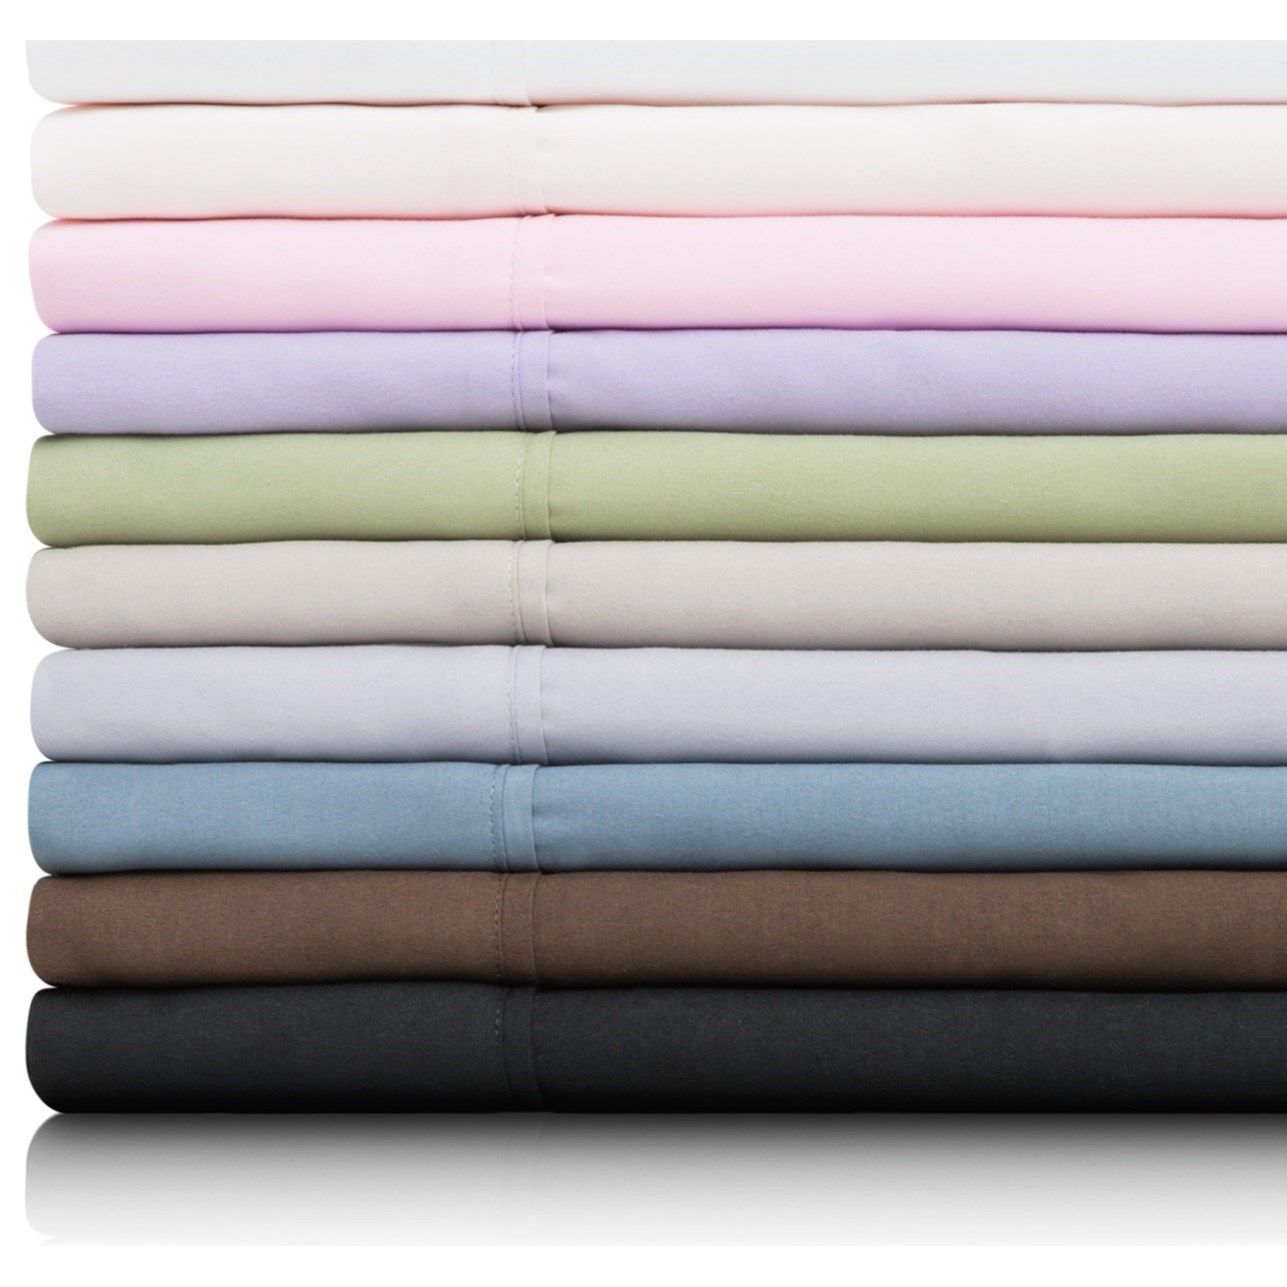 Malouf Brushed Microfiber Full XL Woven™ Brushed Microfiber Sheet Set - Item Number: MA90FXIVMS